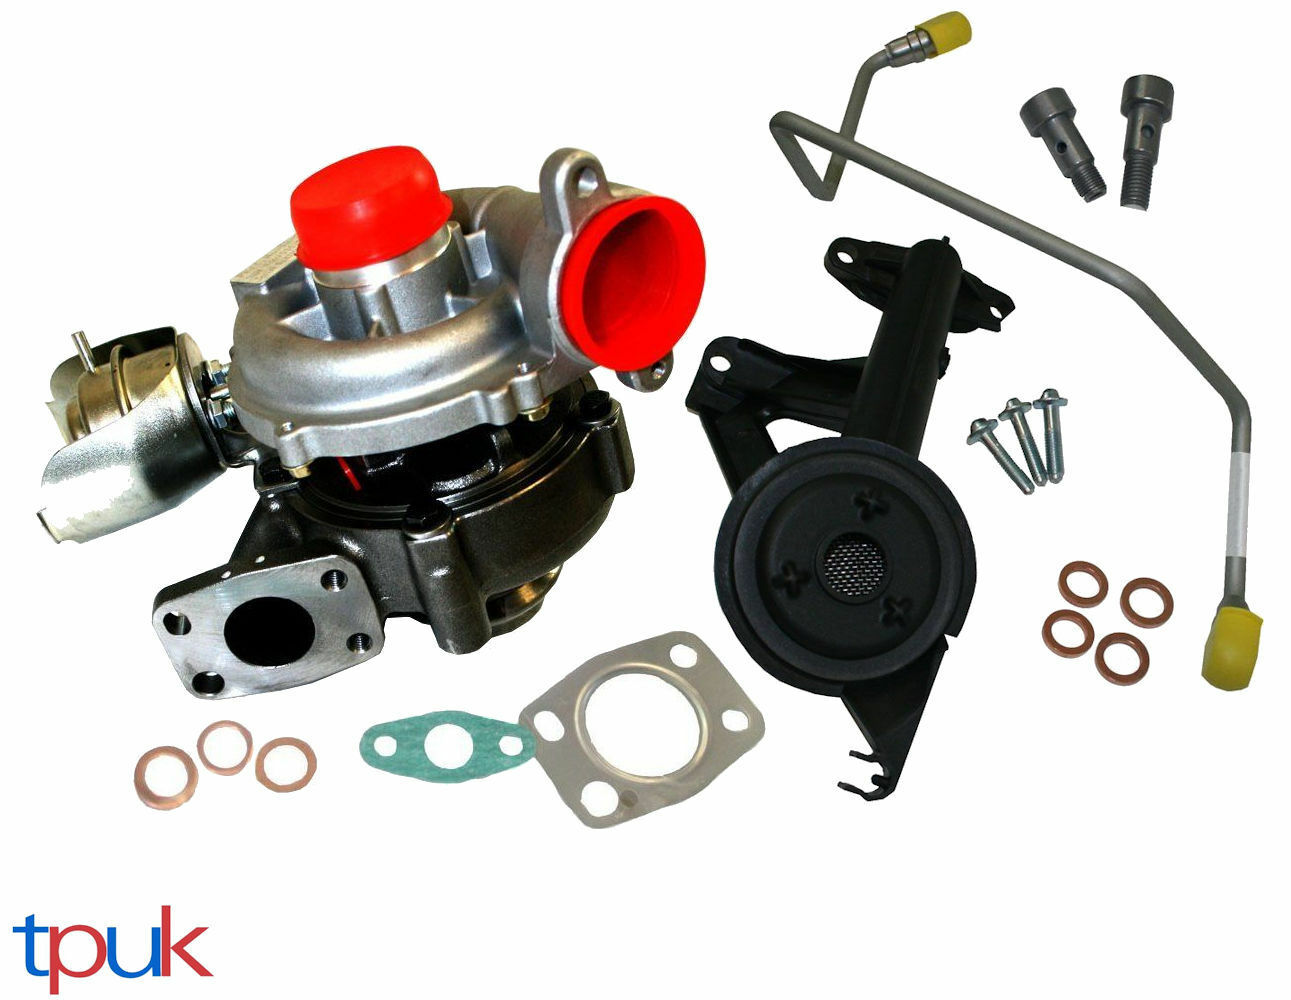 peugeot 307 407 turbo turbocharger 1 6 hdi 110ps and fitting kit ebay. Black Bedroom Furniture Sets. Home Design Ideas